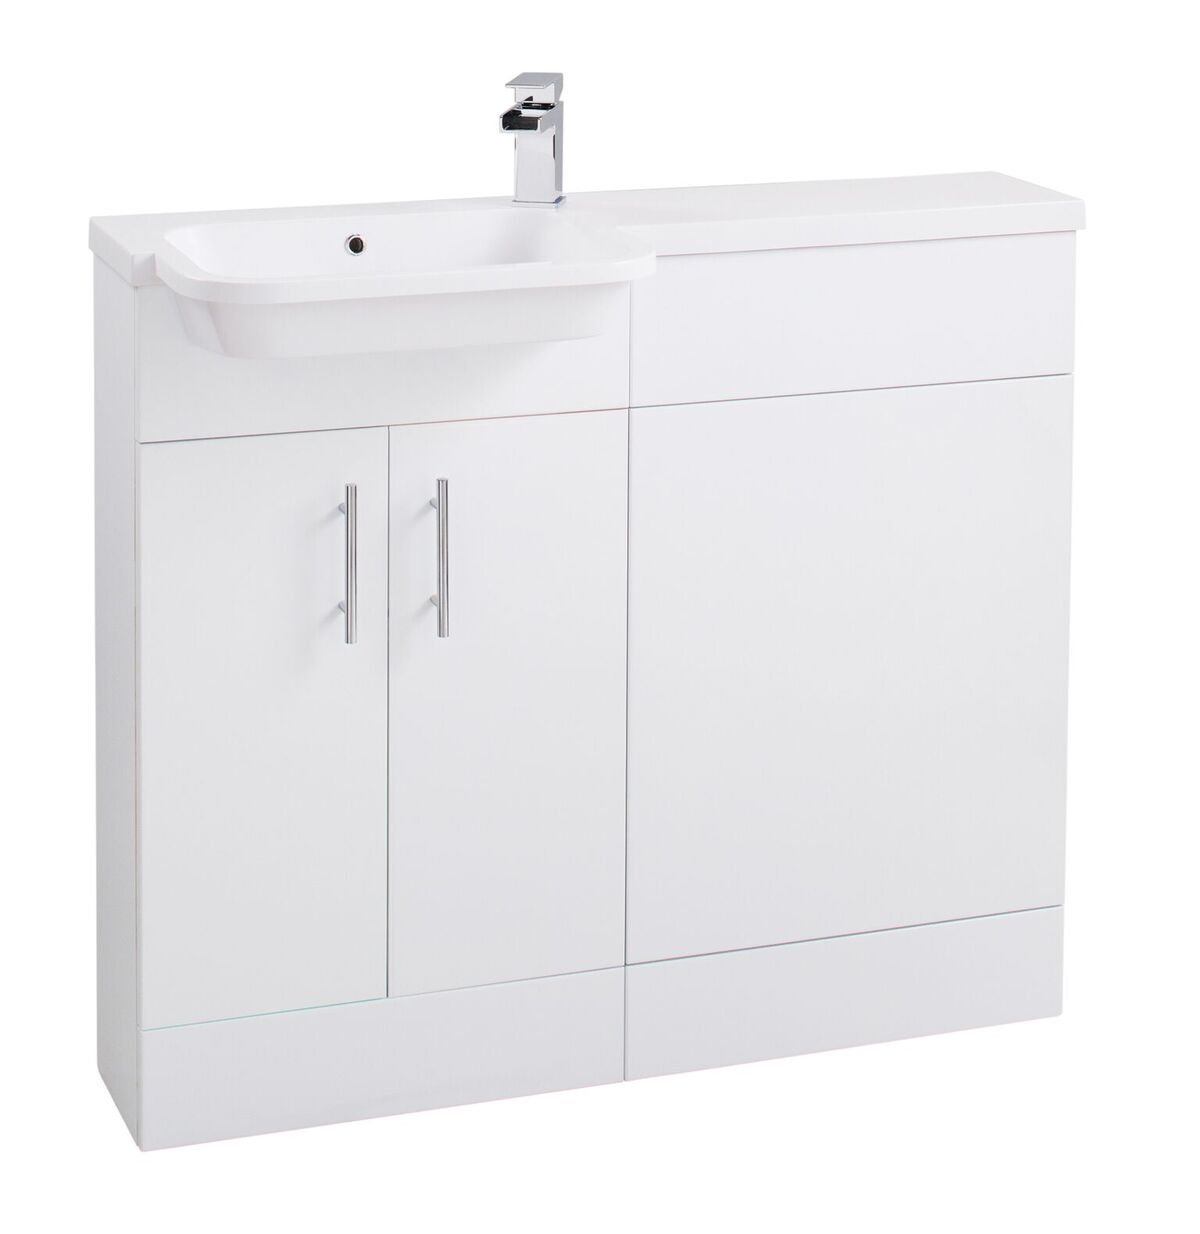 Cassellie Ria Combi Combination Unit with Basin - 1000mm Wide - Gloss White - Left Handed